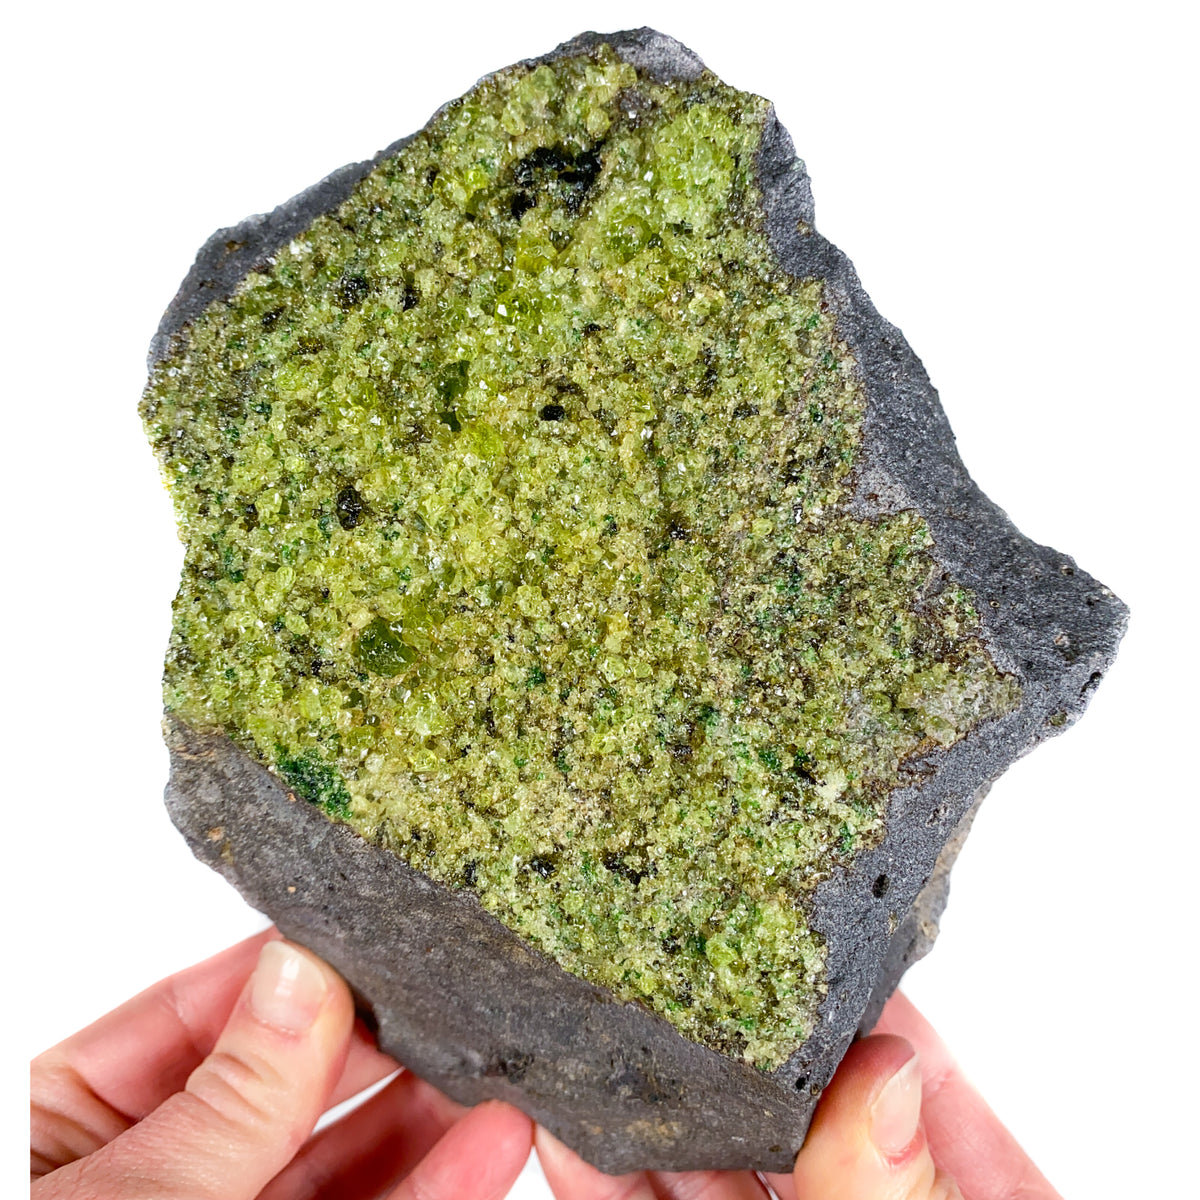 Large Peridot (Olivine) in Basalt from San Carlos Reservation Arizona